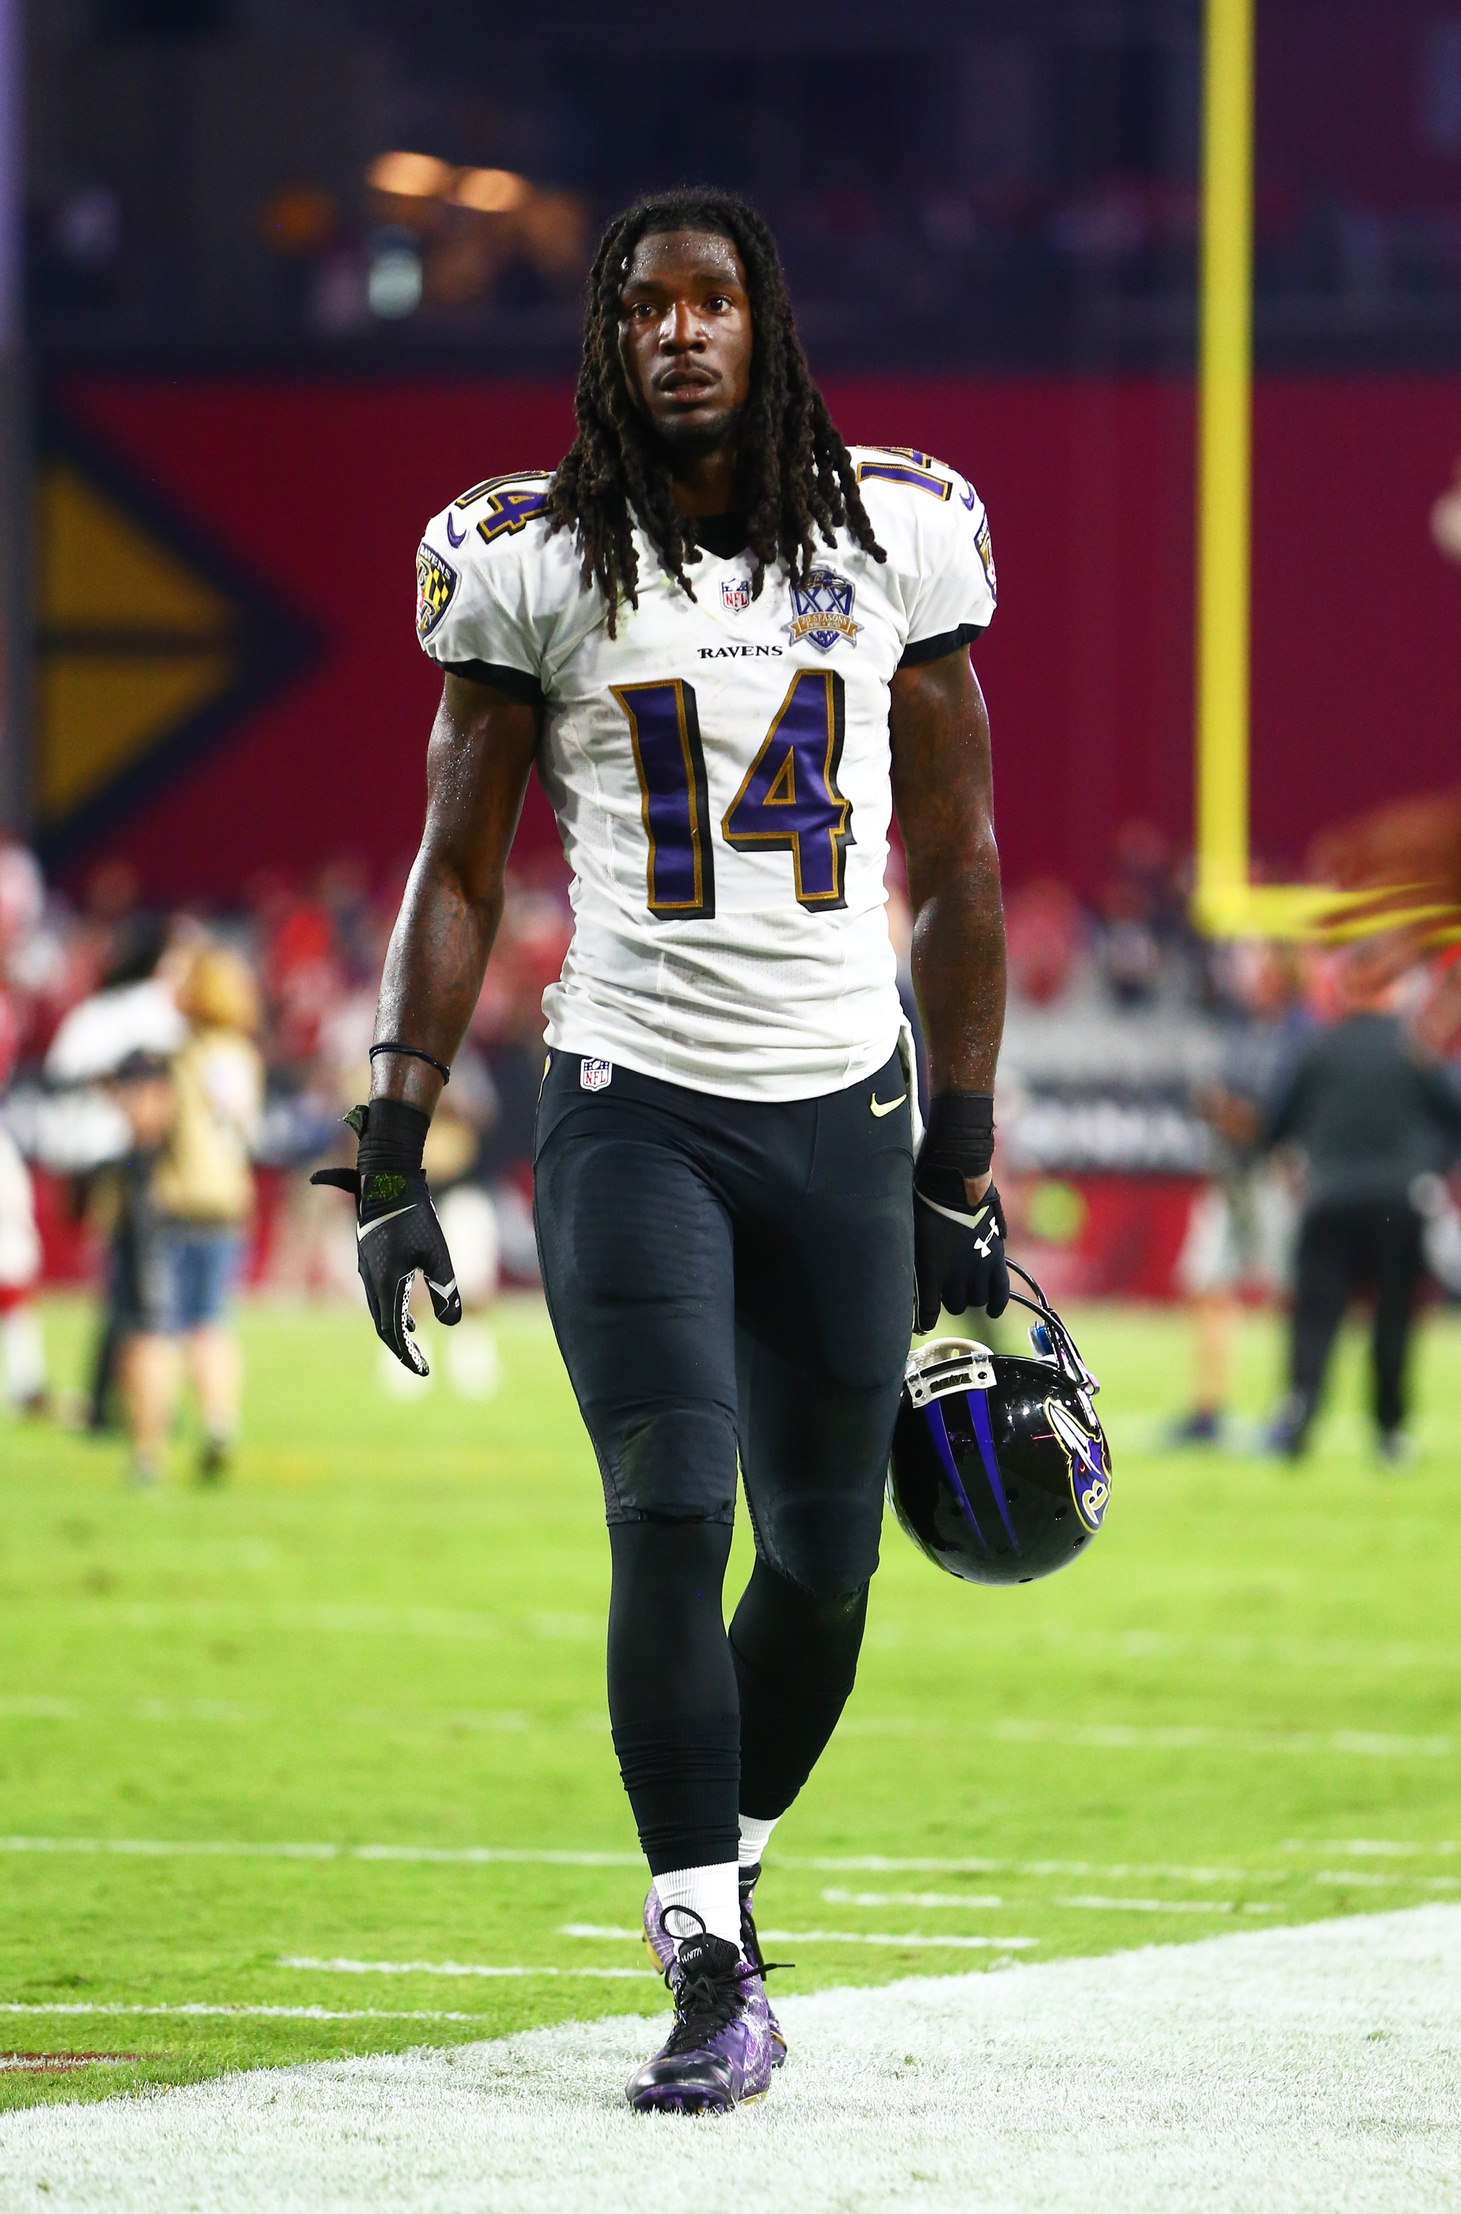 Bears To Sign WR Marlon Brown